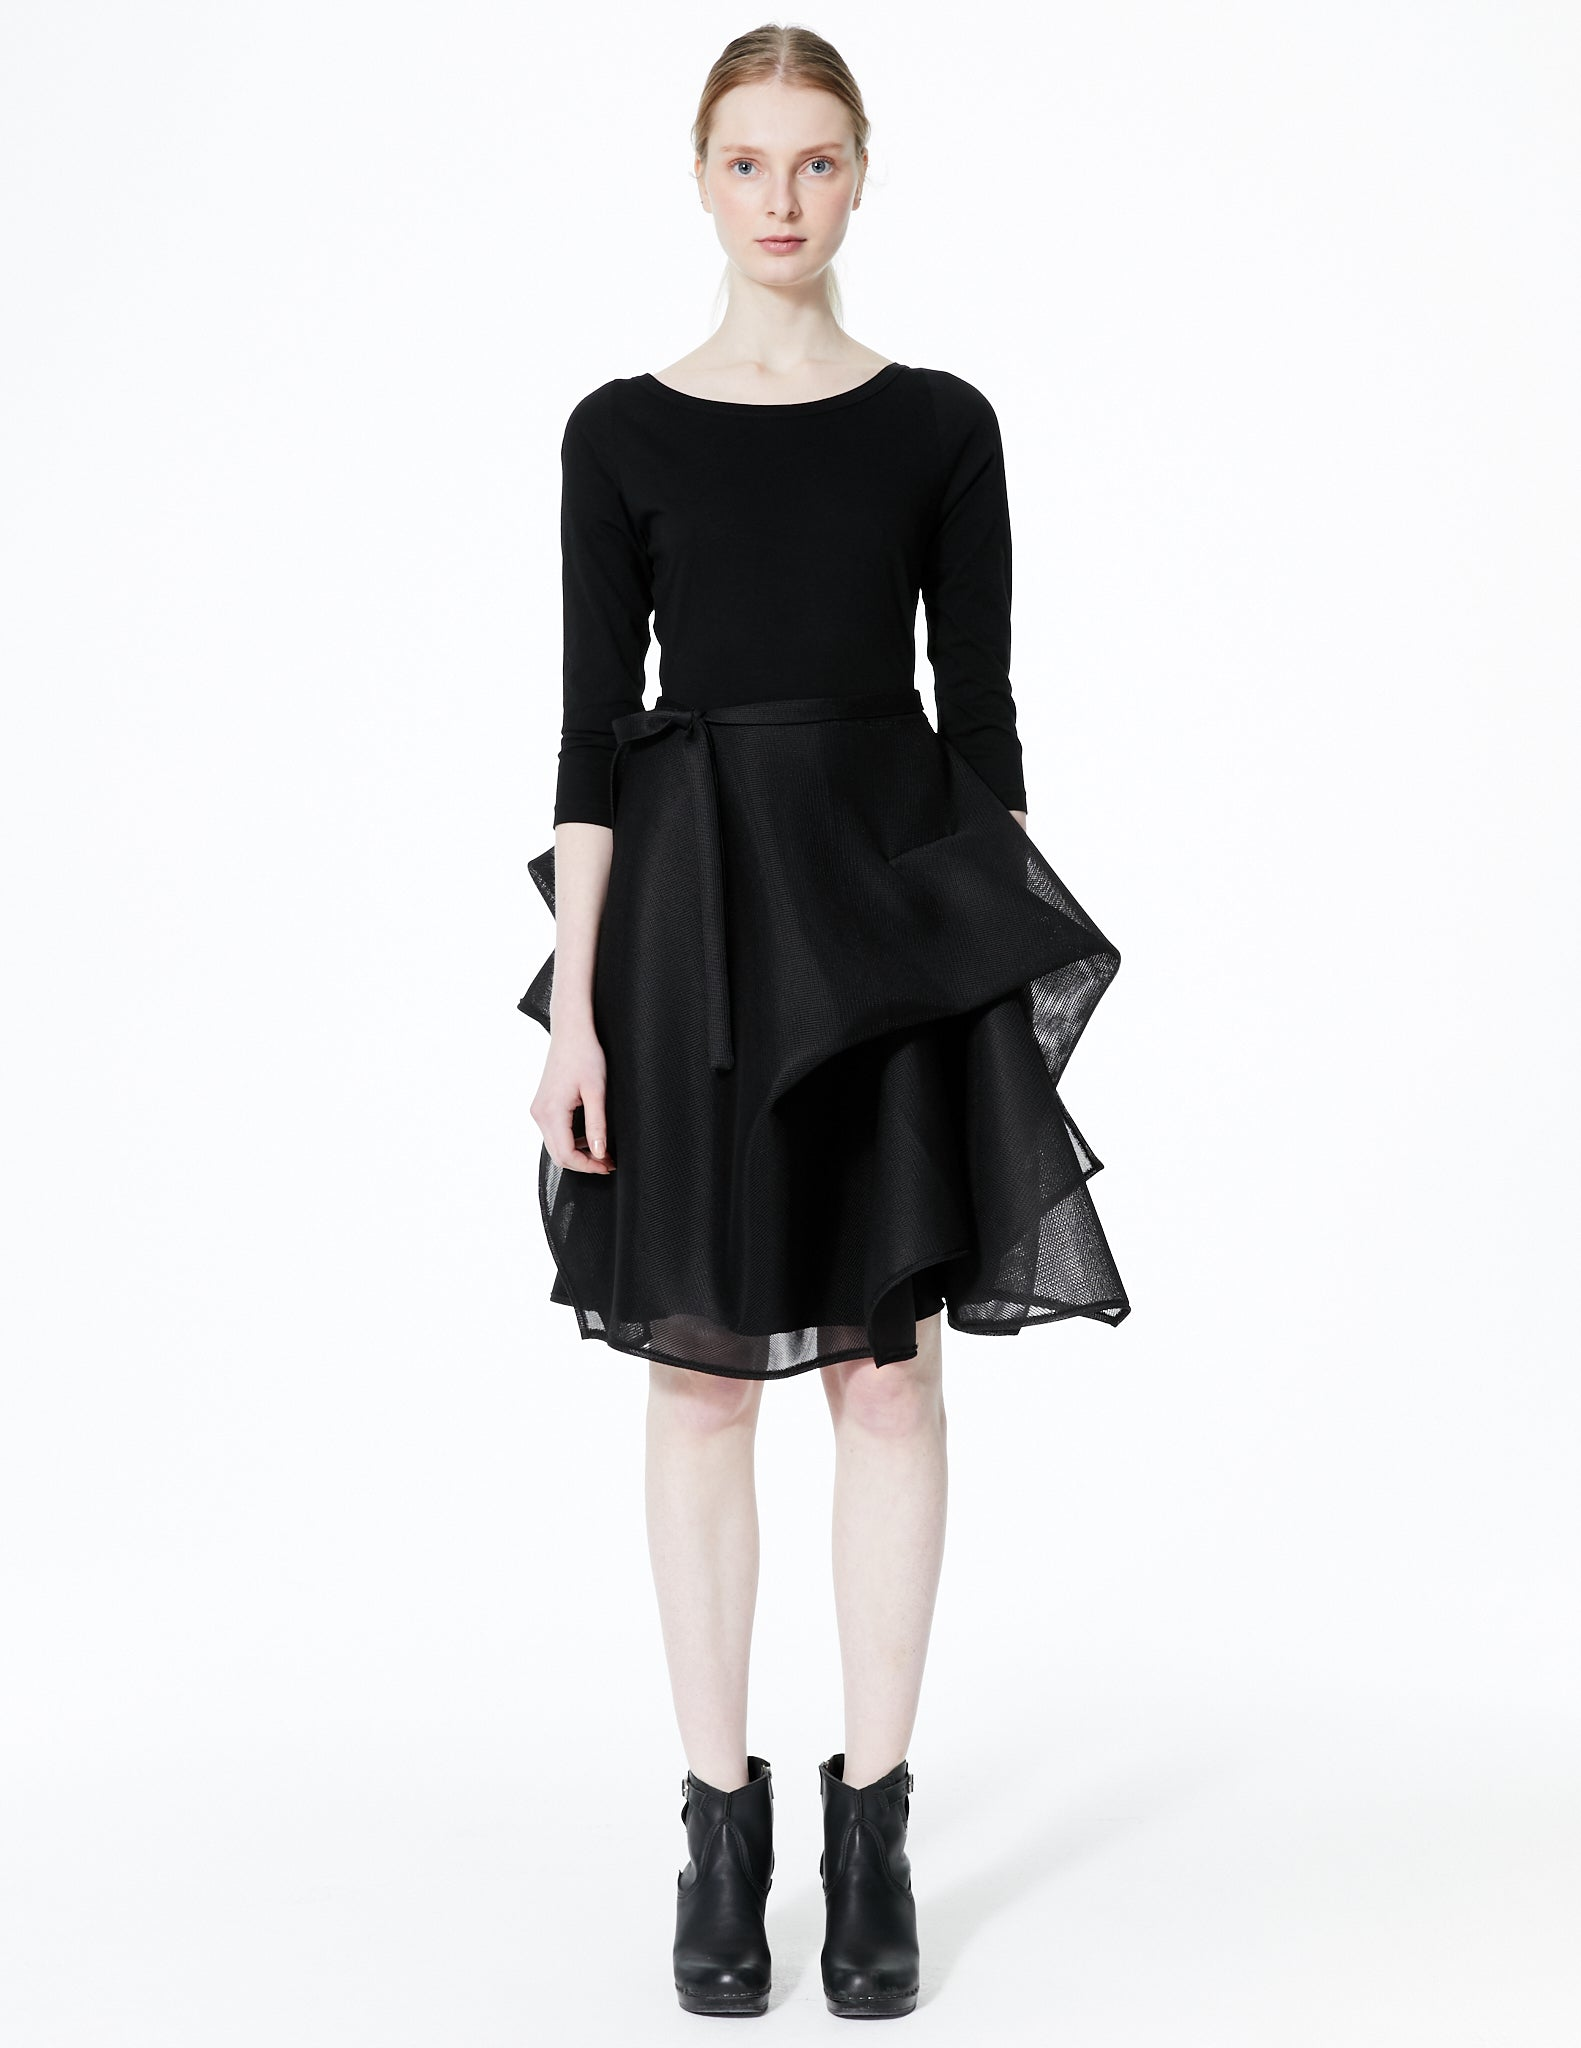 short dress with cotton jersey top and draped warp knit skirt